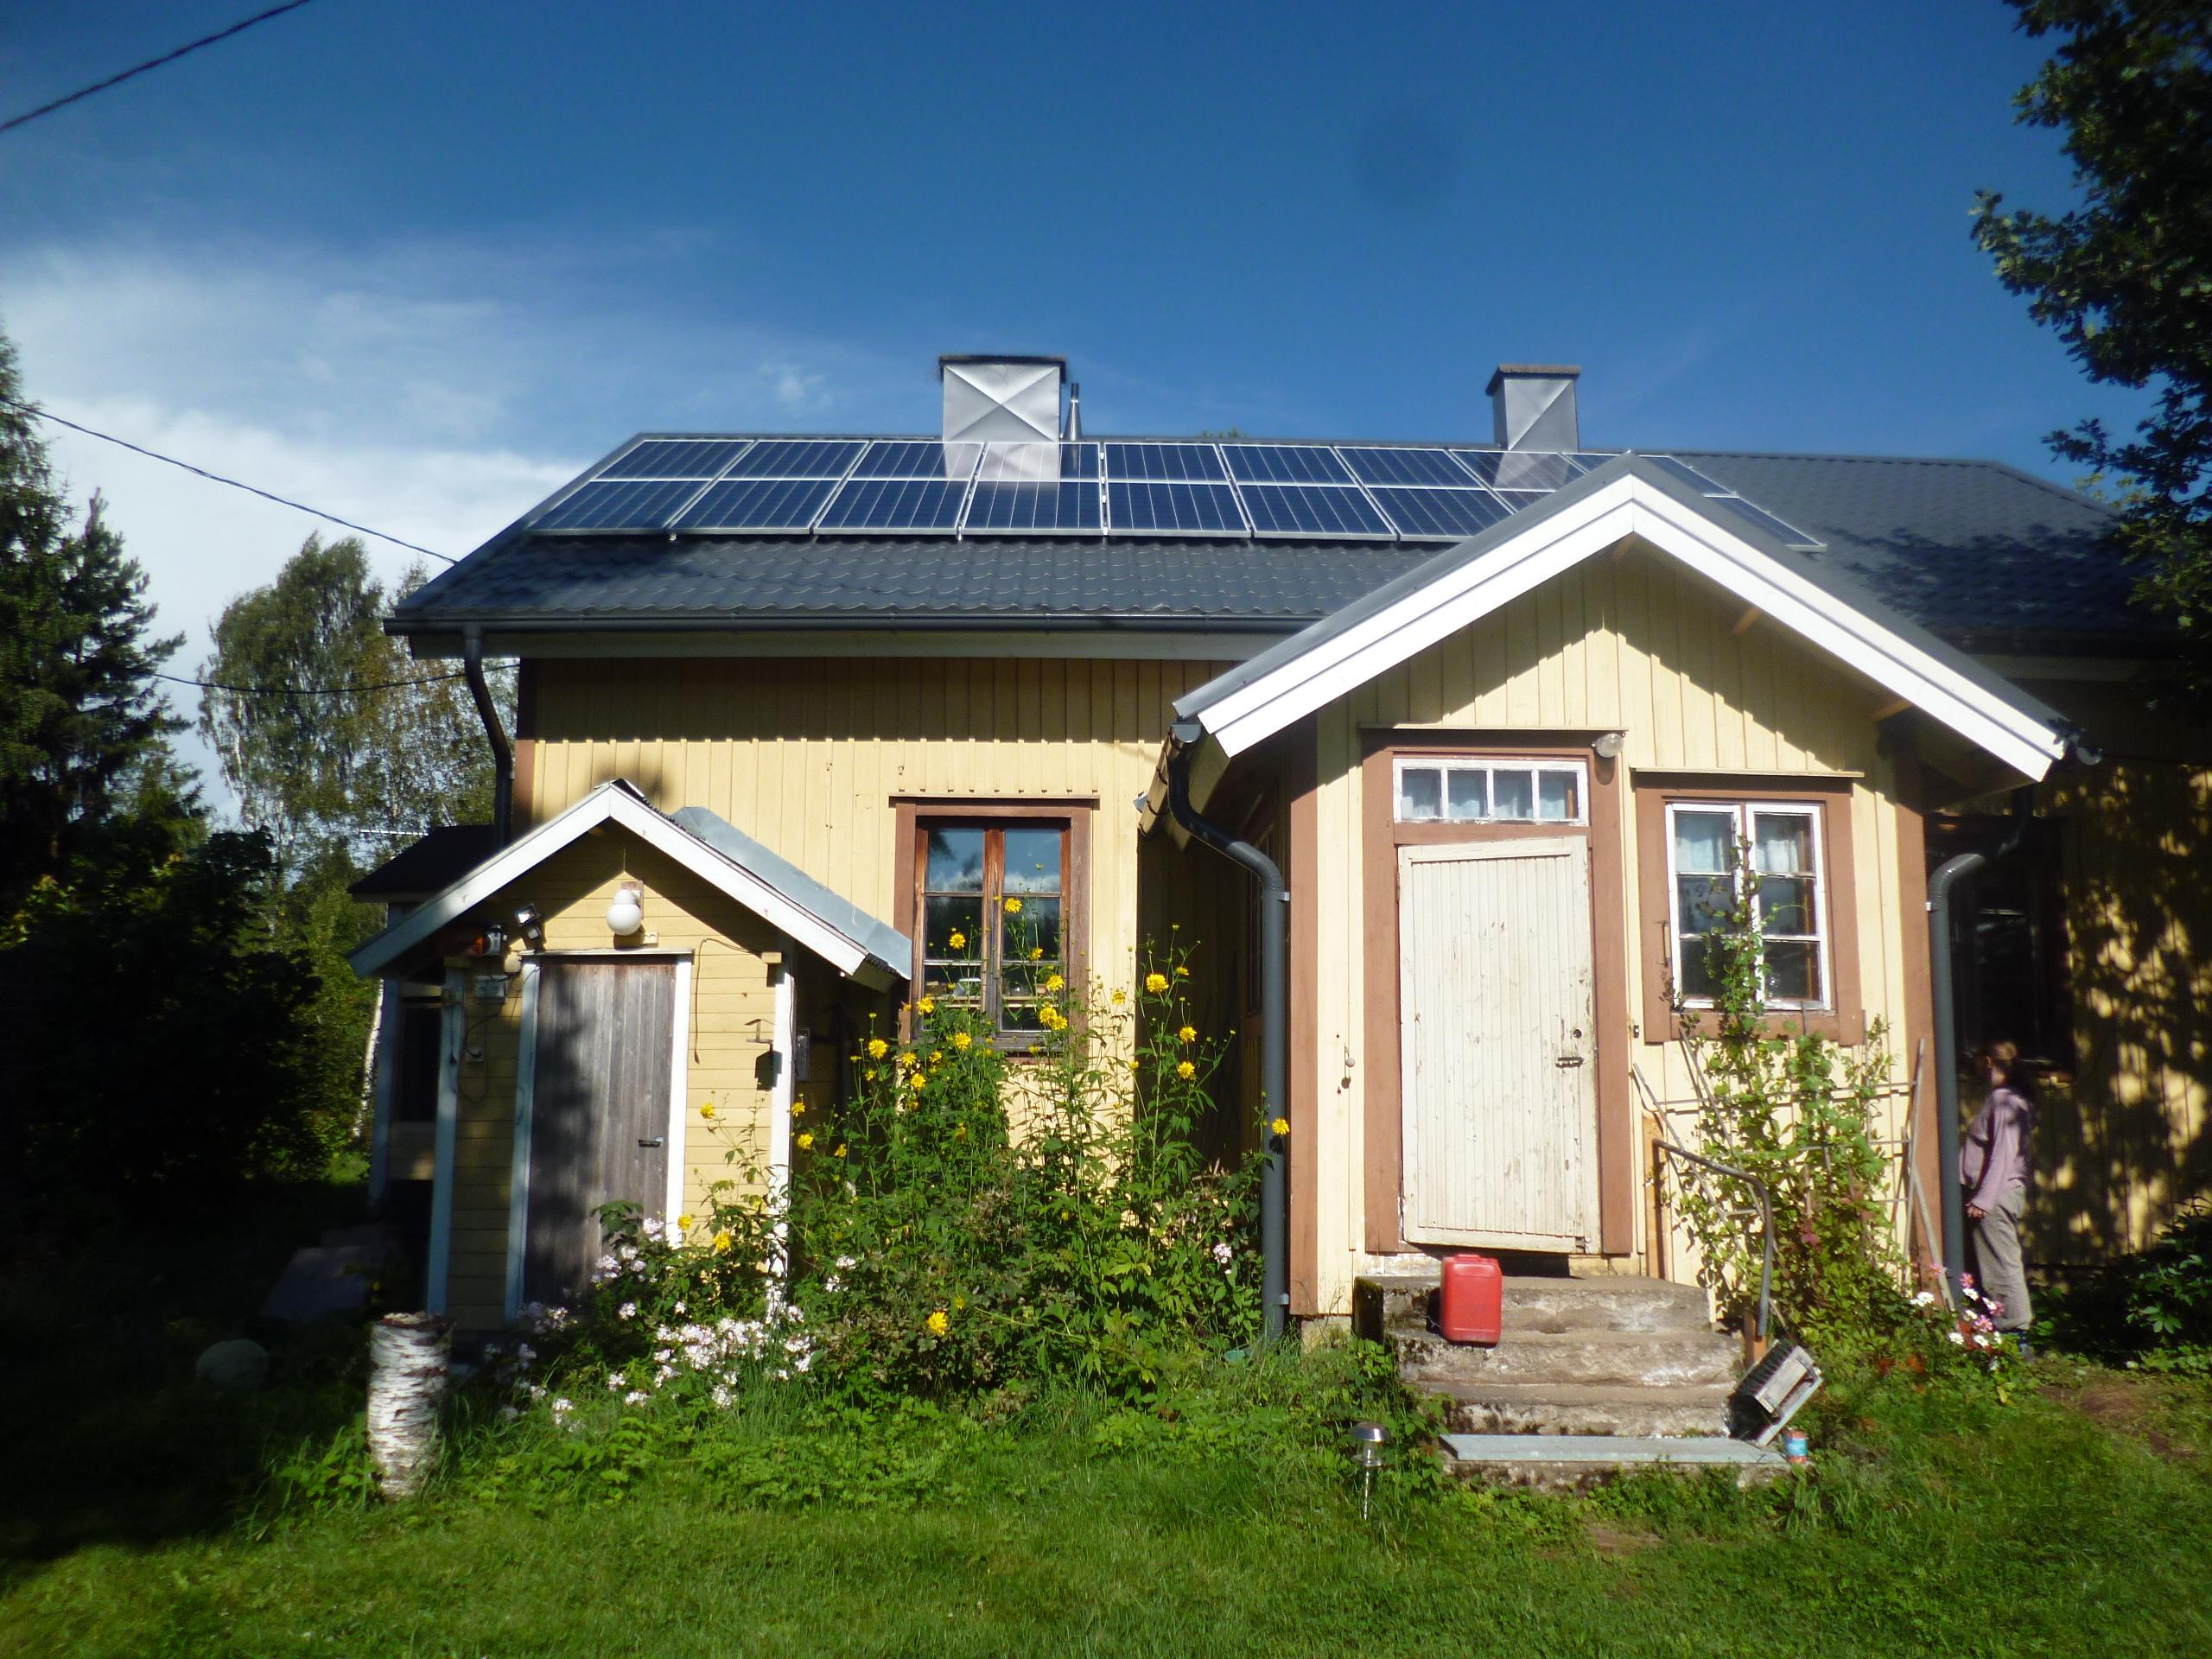 4.6KWP Photovoltaic system on a house in Finland